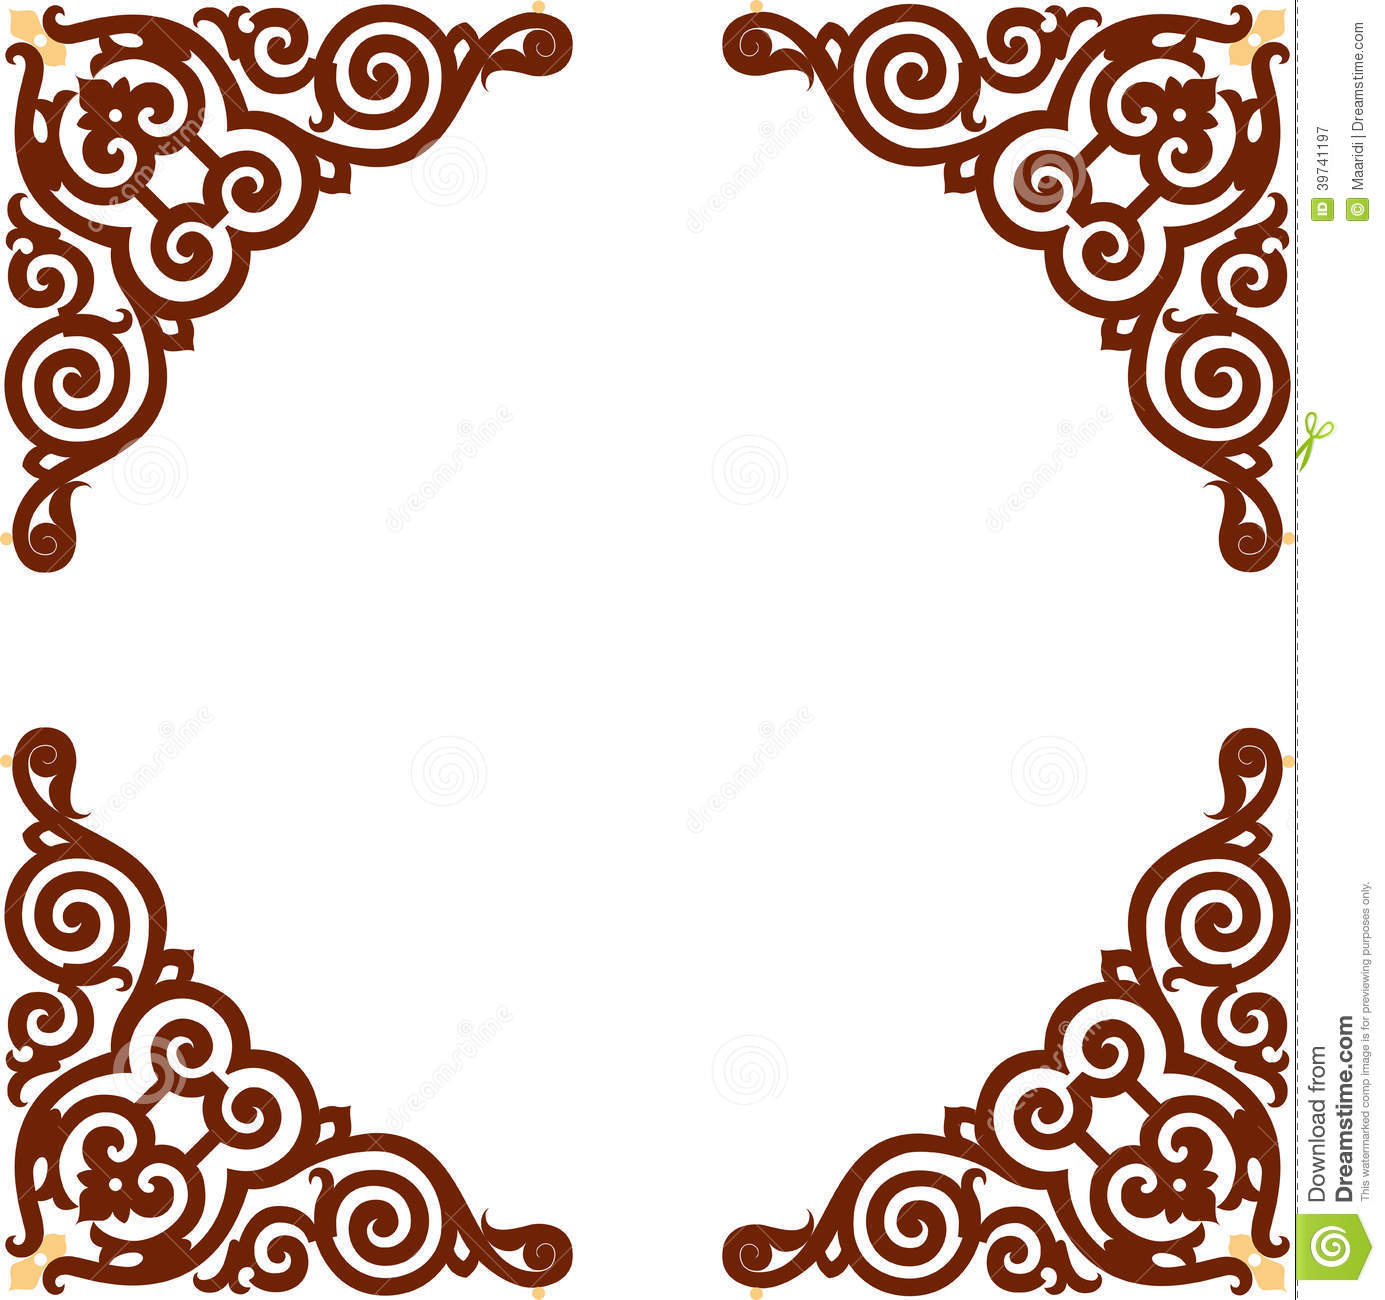 oriental ornament stock vector image 39741197 vector lace pattern free download vector lace pattern free download